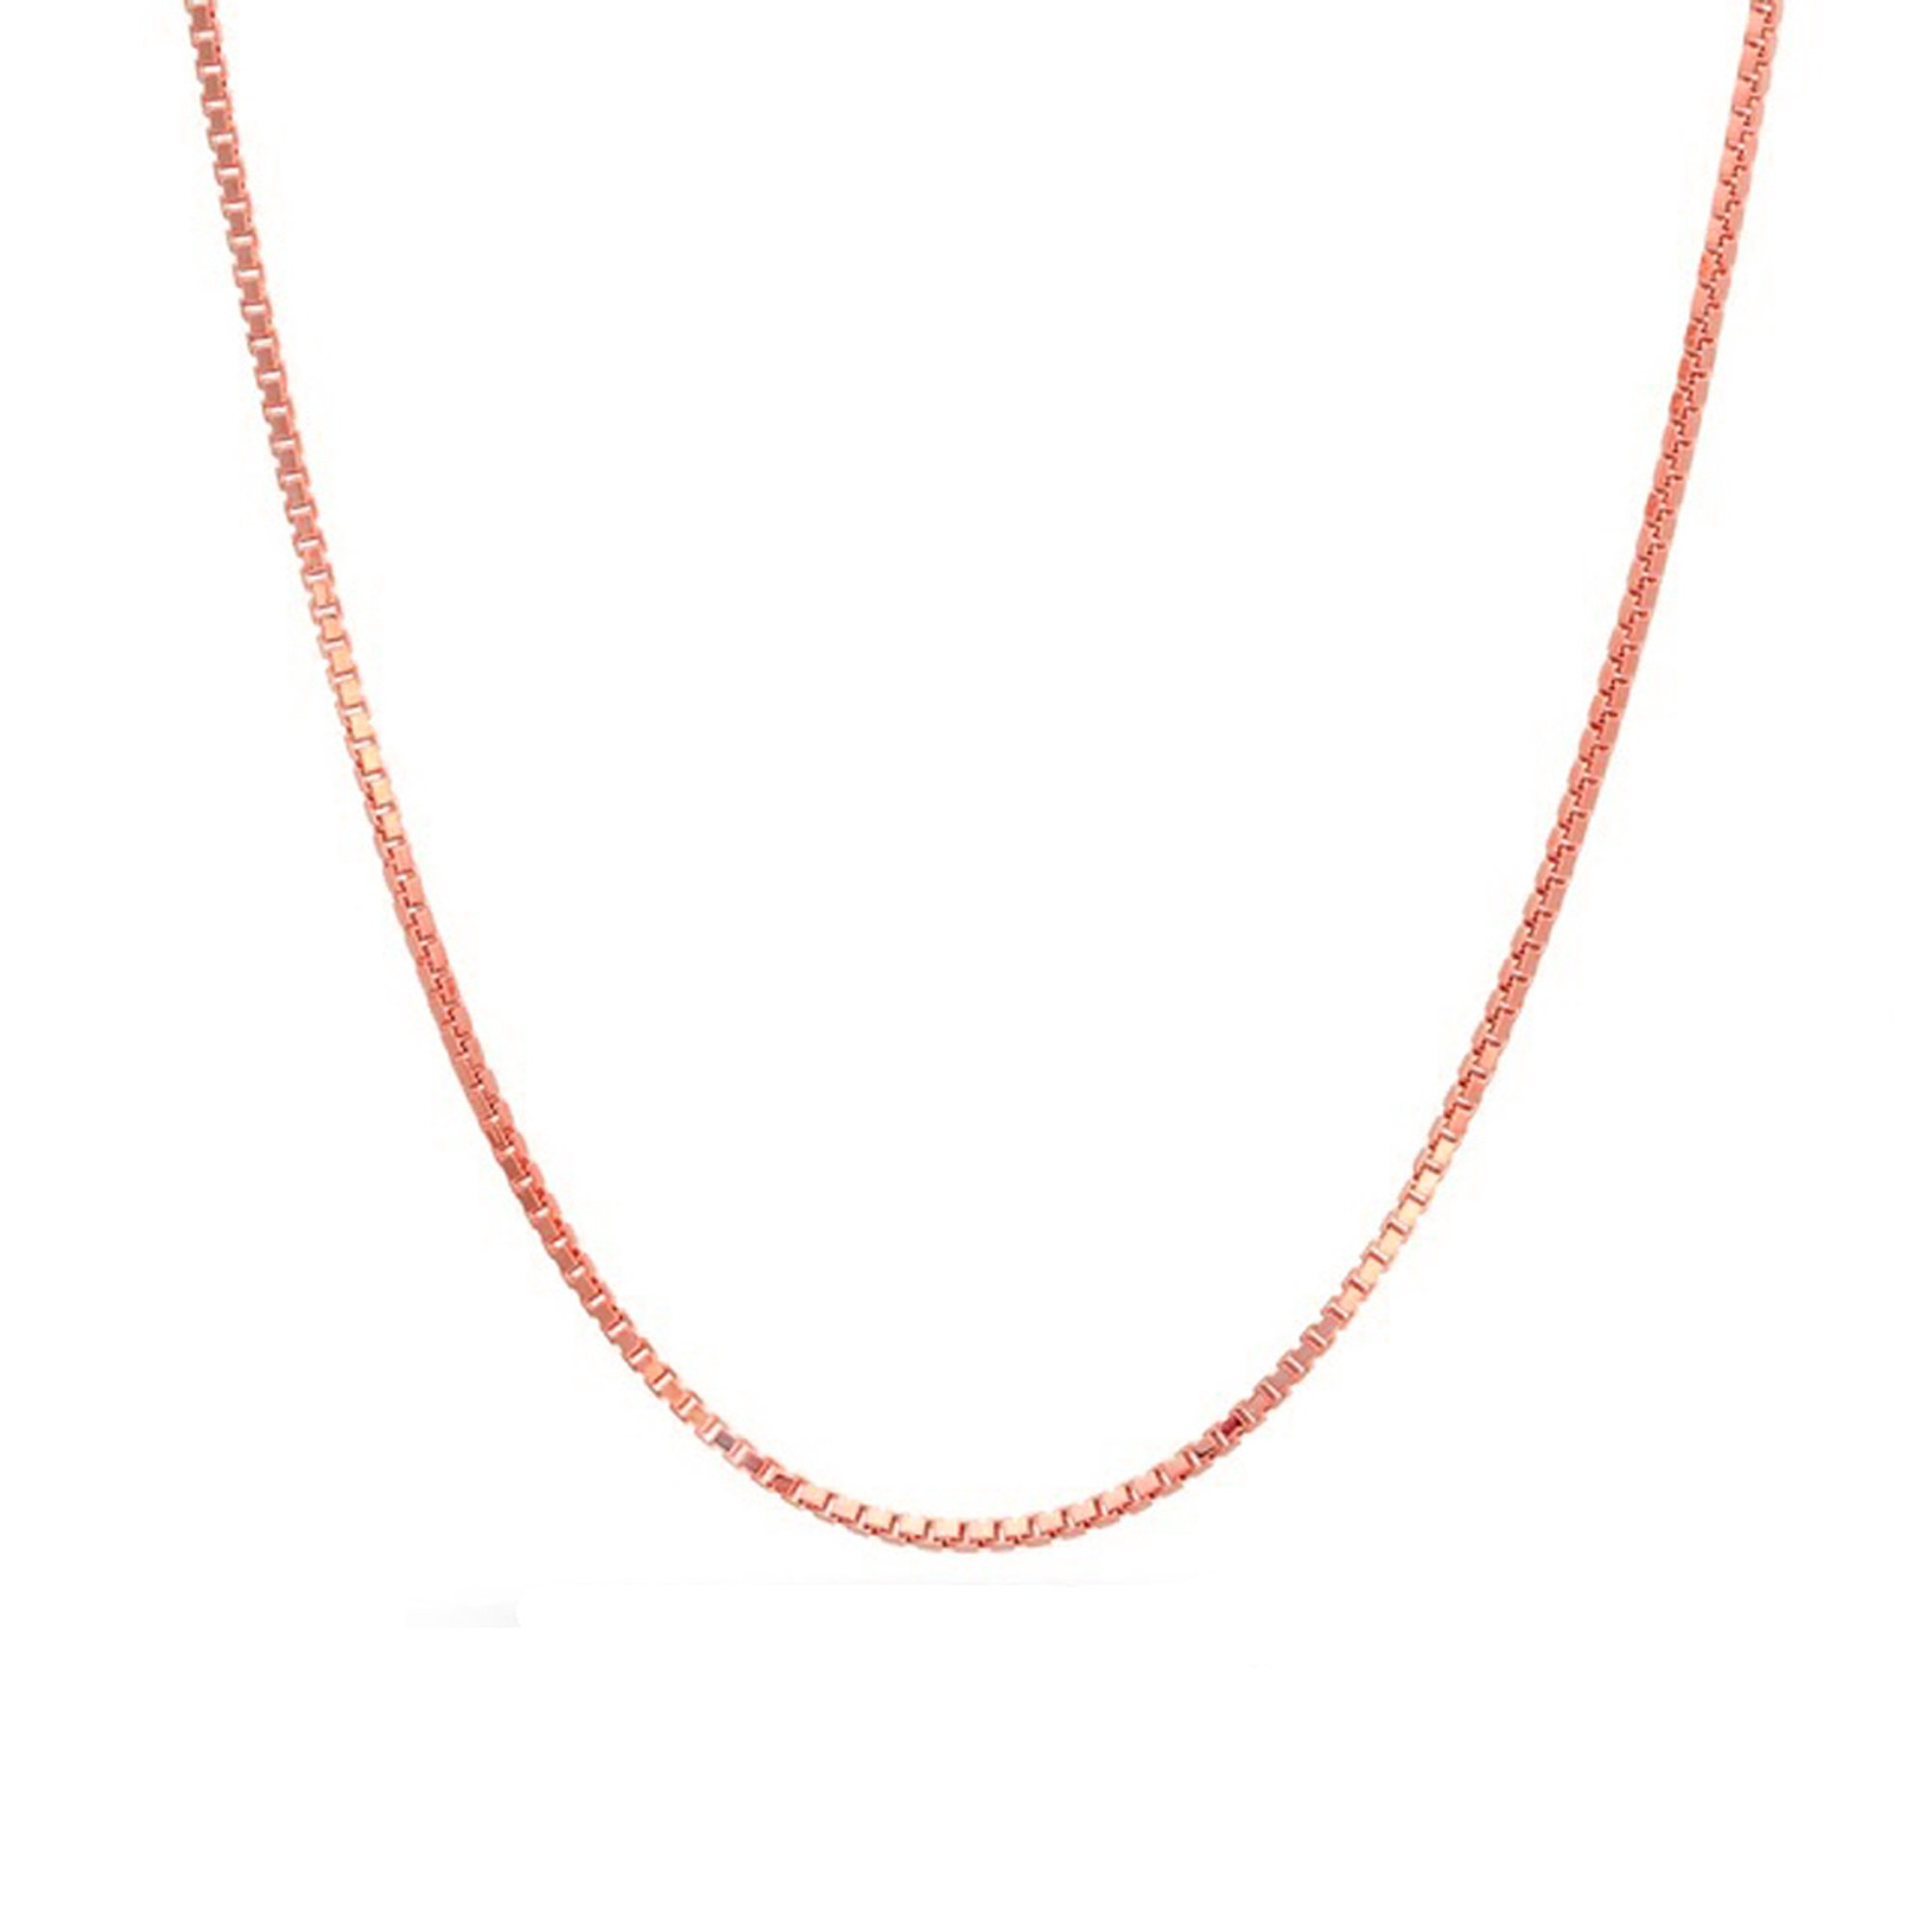 14K Rose Gold Box 012 0.72mm 20'' Pendant Chain by Decadence (Image #1)